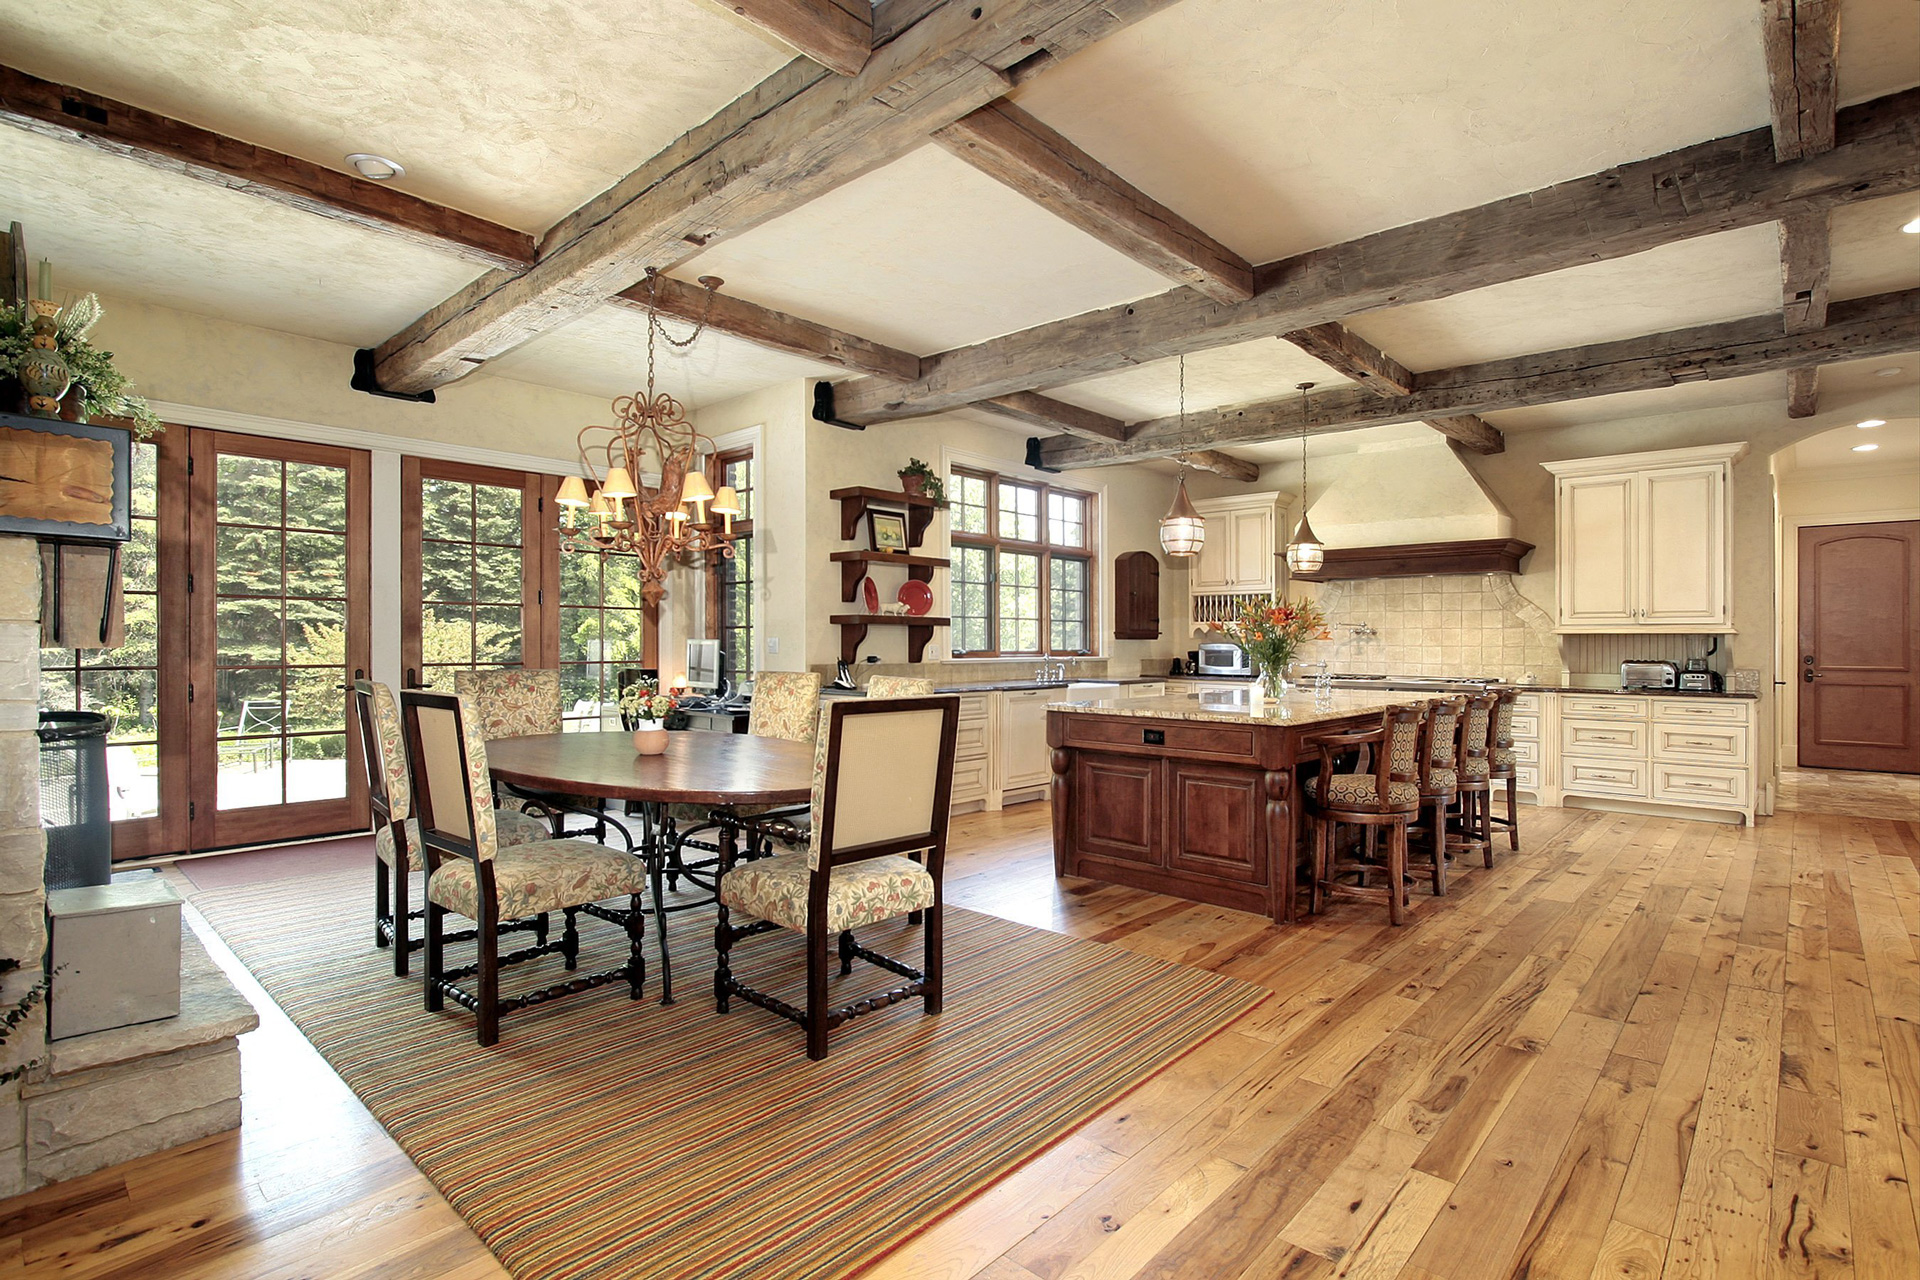 Five Ways To Add Rustic Farmhouse Style To Your Kitchen